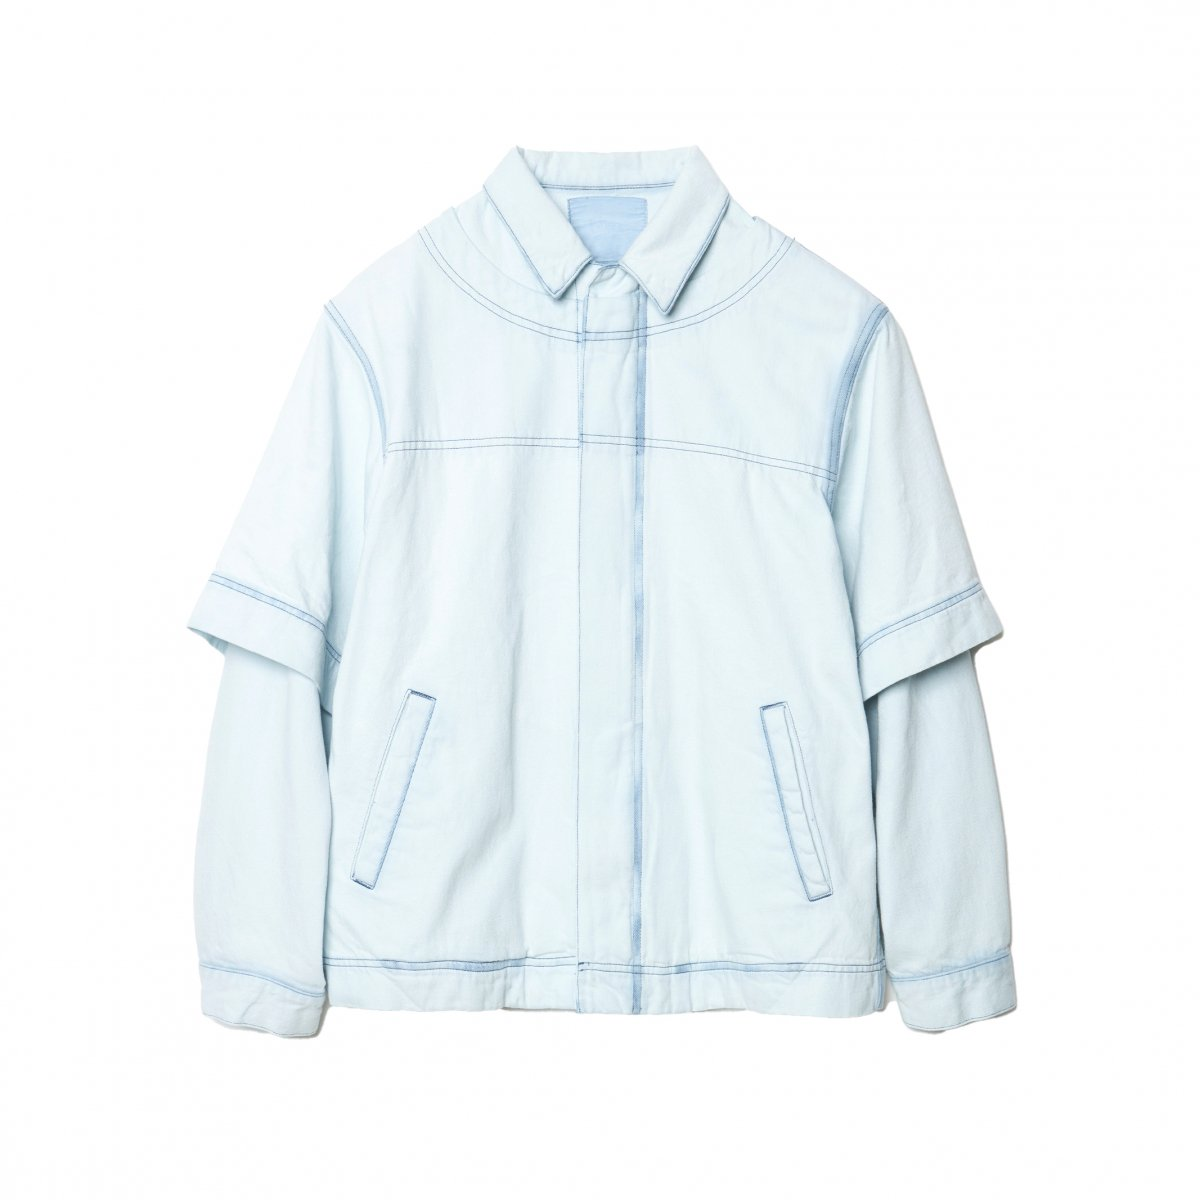 <img class='new_mark_img1' src='https://img.shop-pro.jp/img/new/icons5.gif' style='border:none;display:inline;margin:0px;padding:0px;width:auto;' />PULL OVERED DENIM BLOUSON / ICE GREY